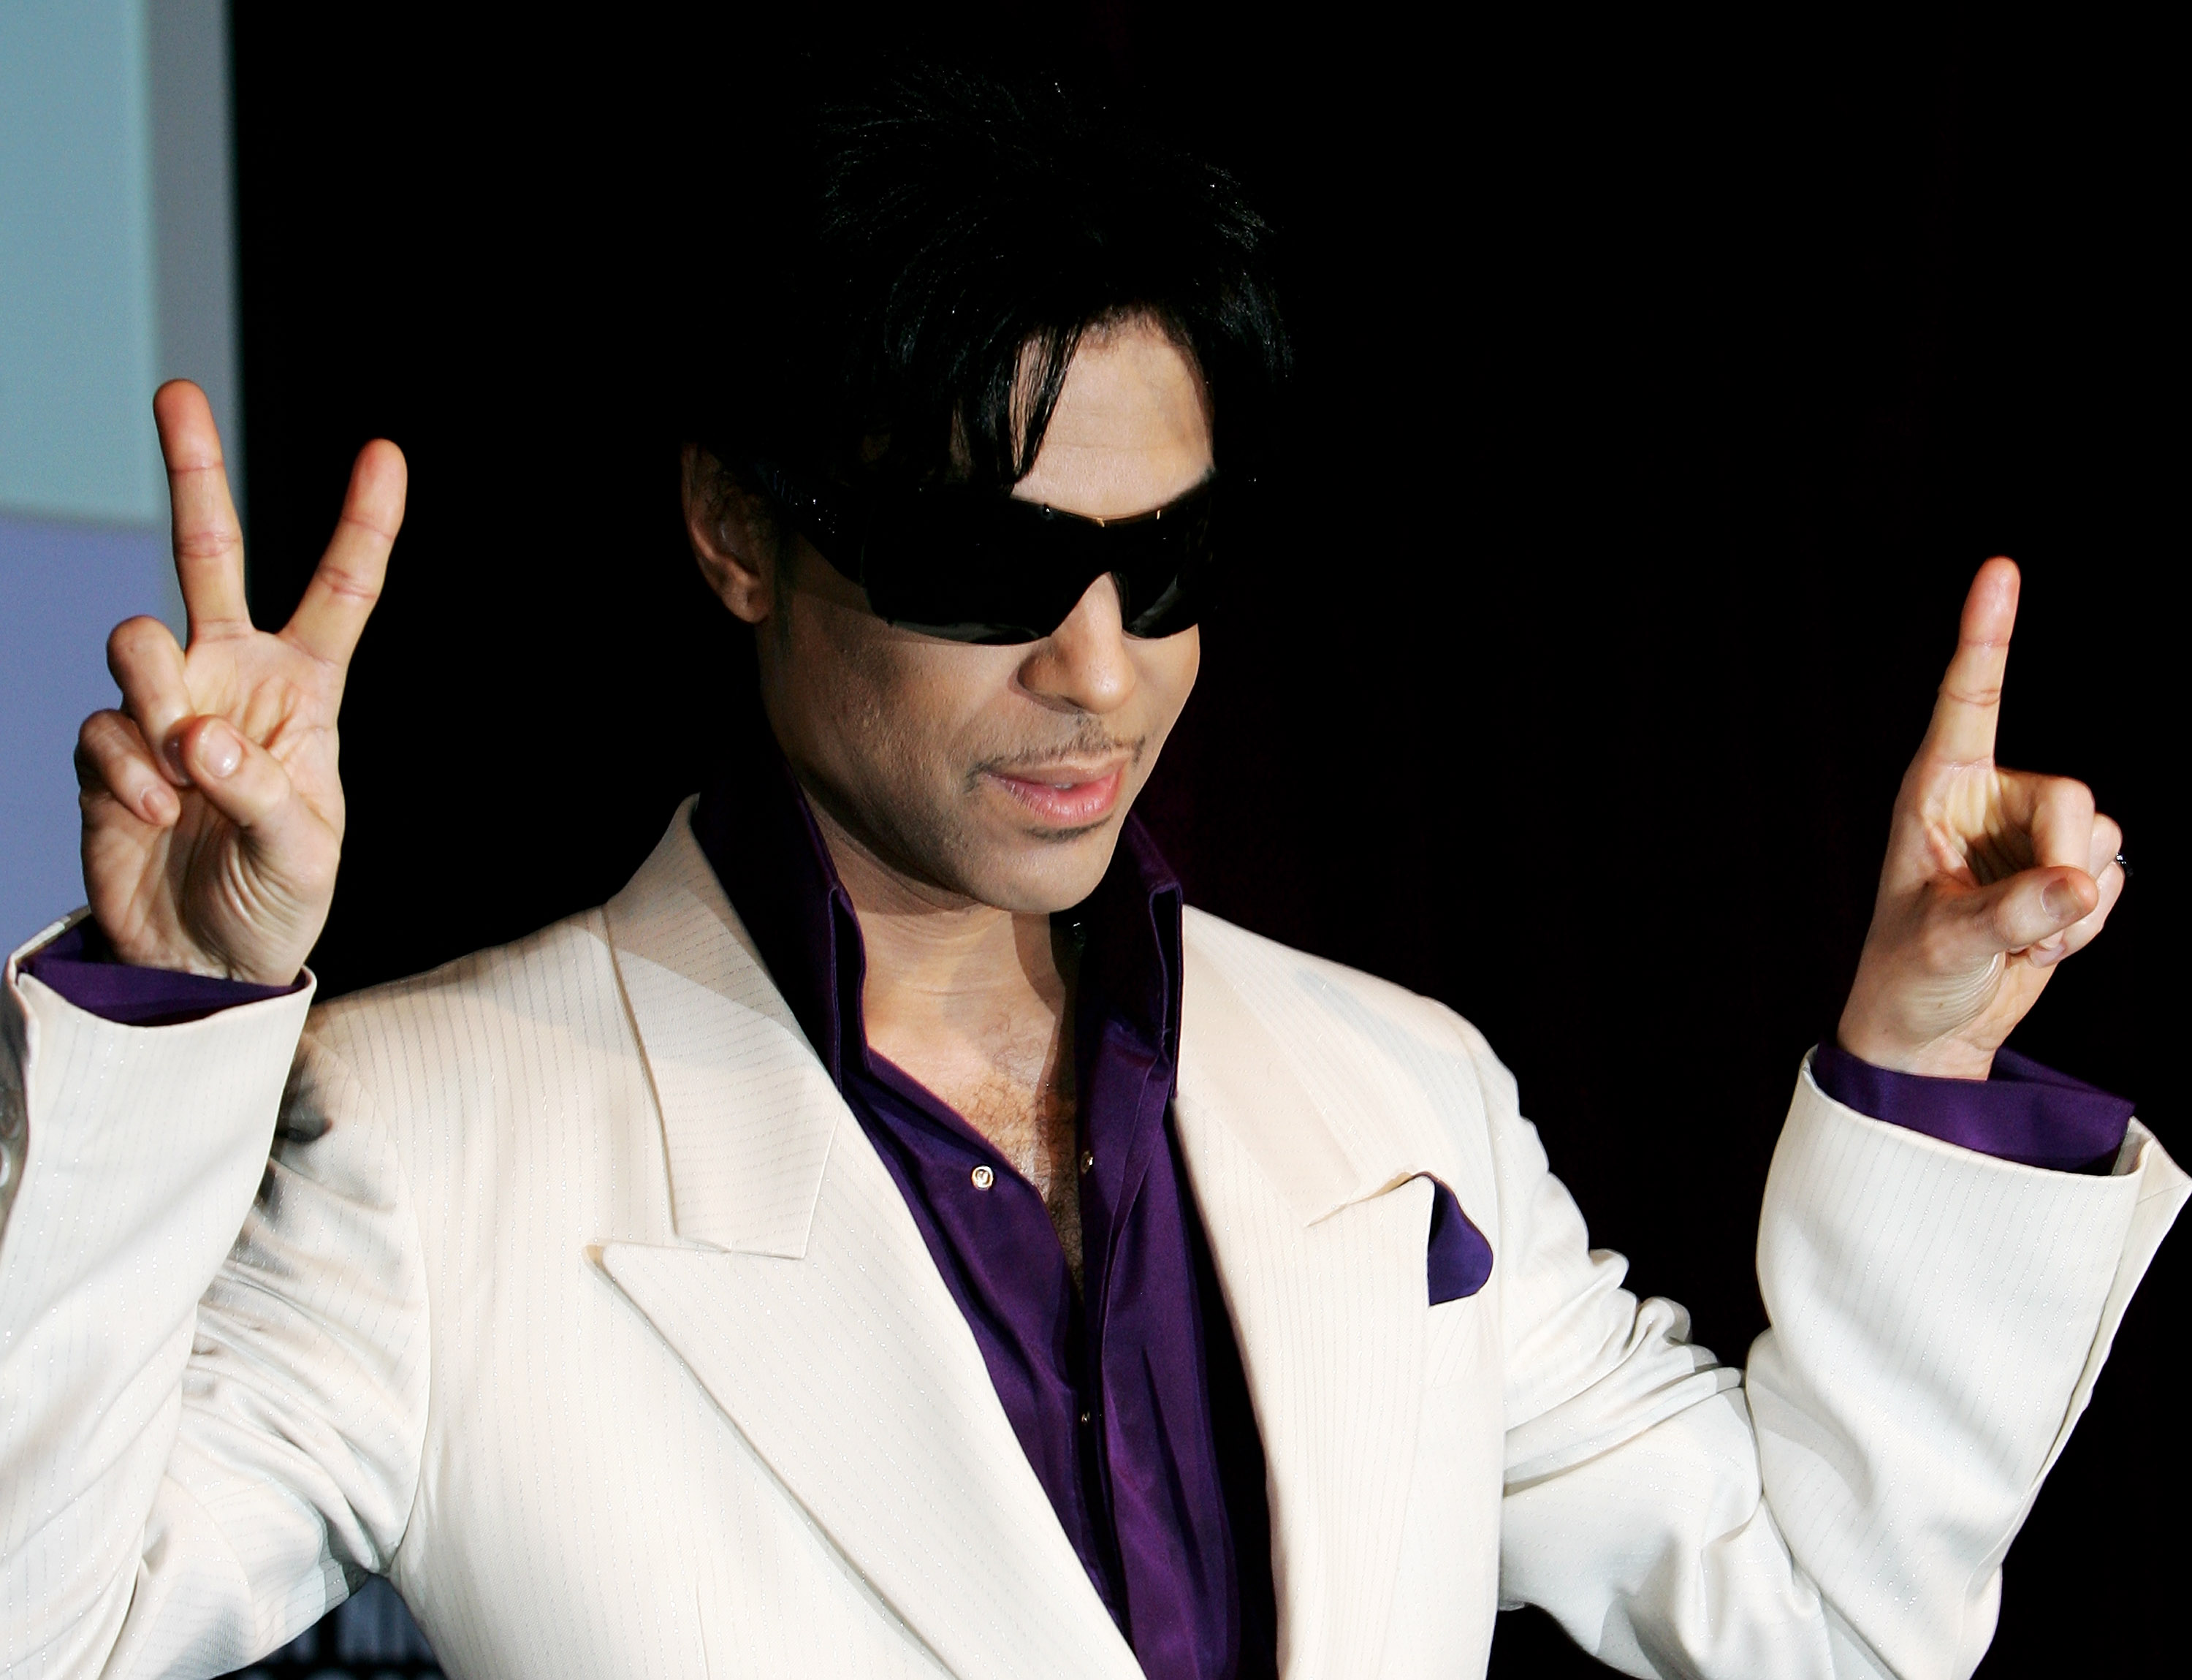 Prince facts